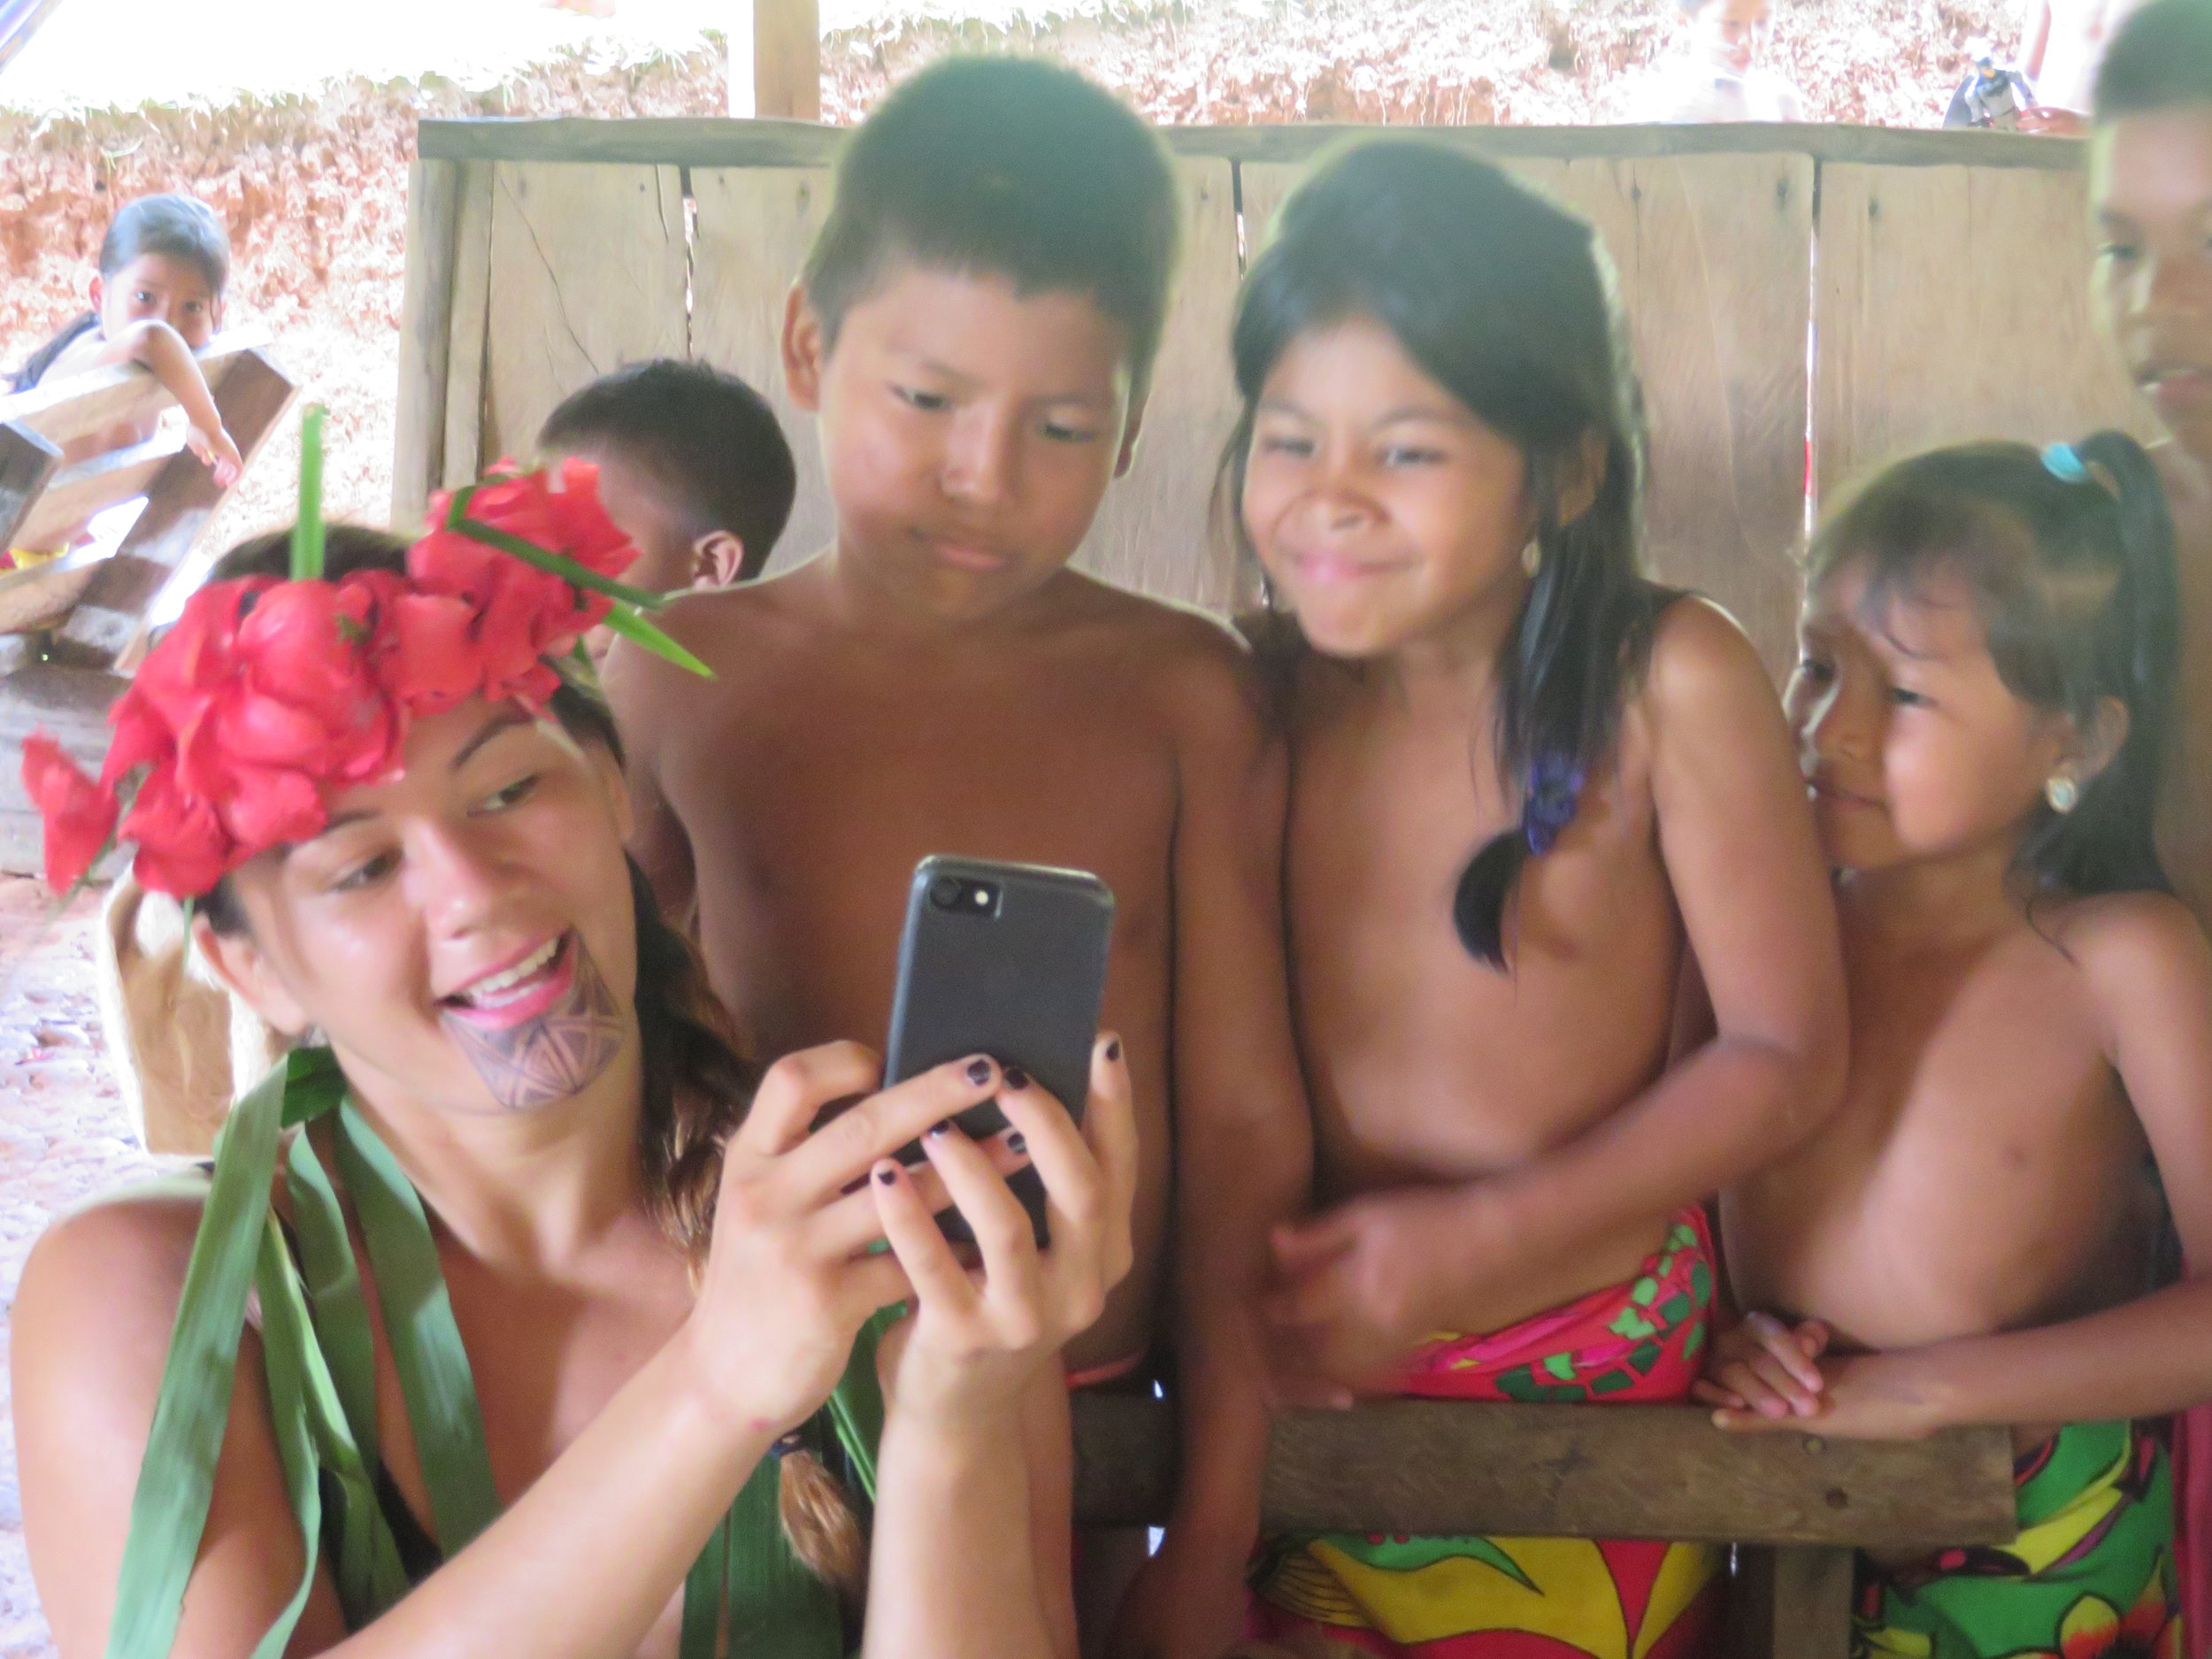 Ilima-lei sharing Aloha with youth of Embera Quera Tribe in Panama. Many indigenous youth have limited access to the world. IT is extra special when aloha comes and is shared.